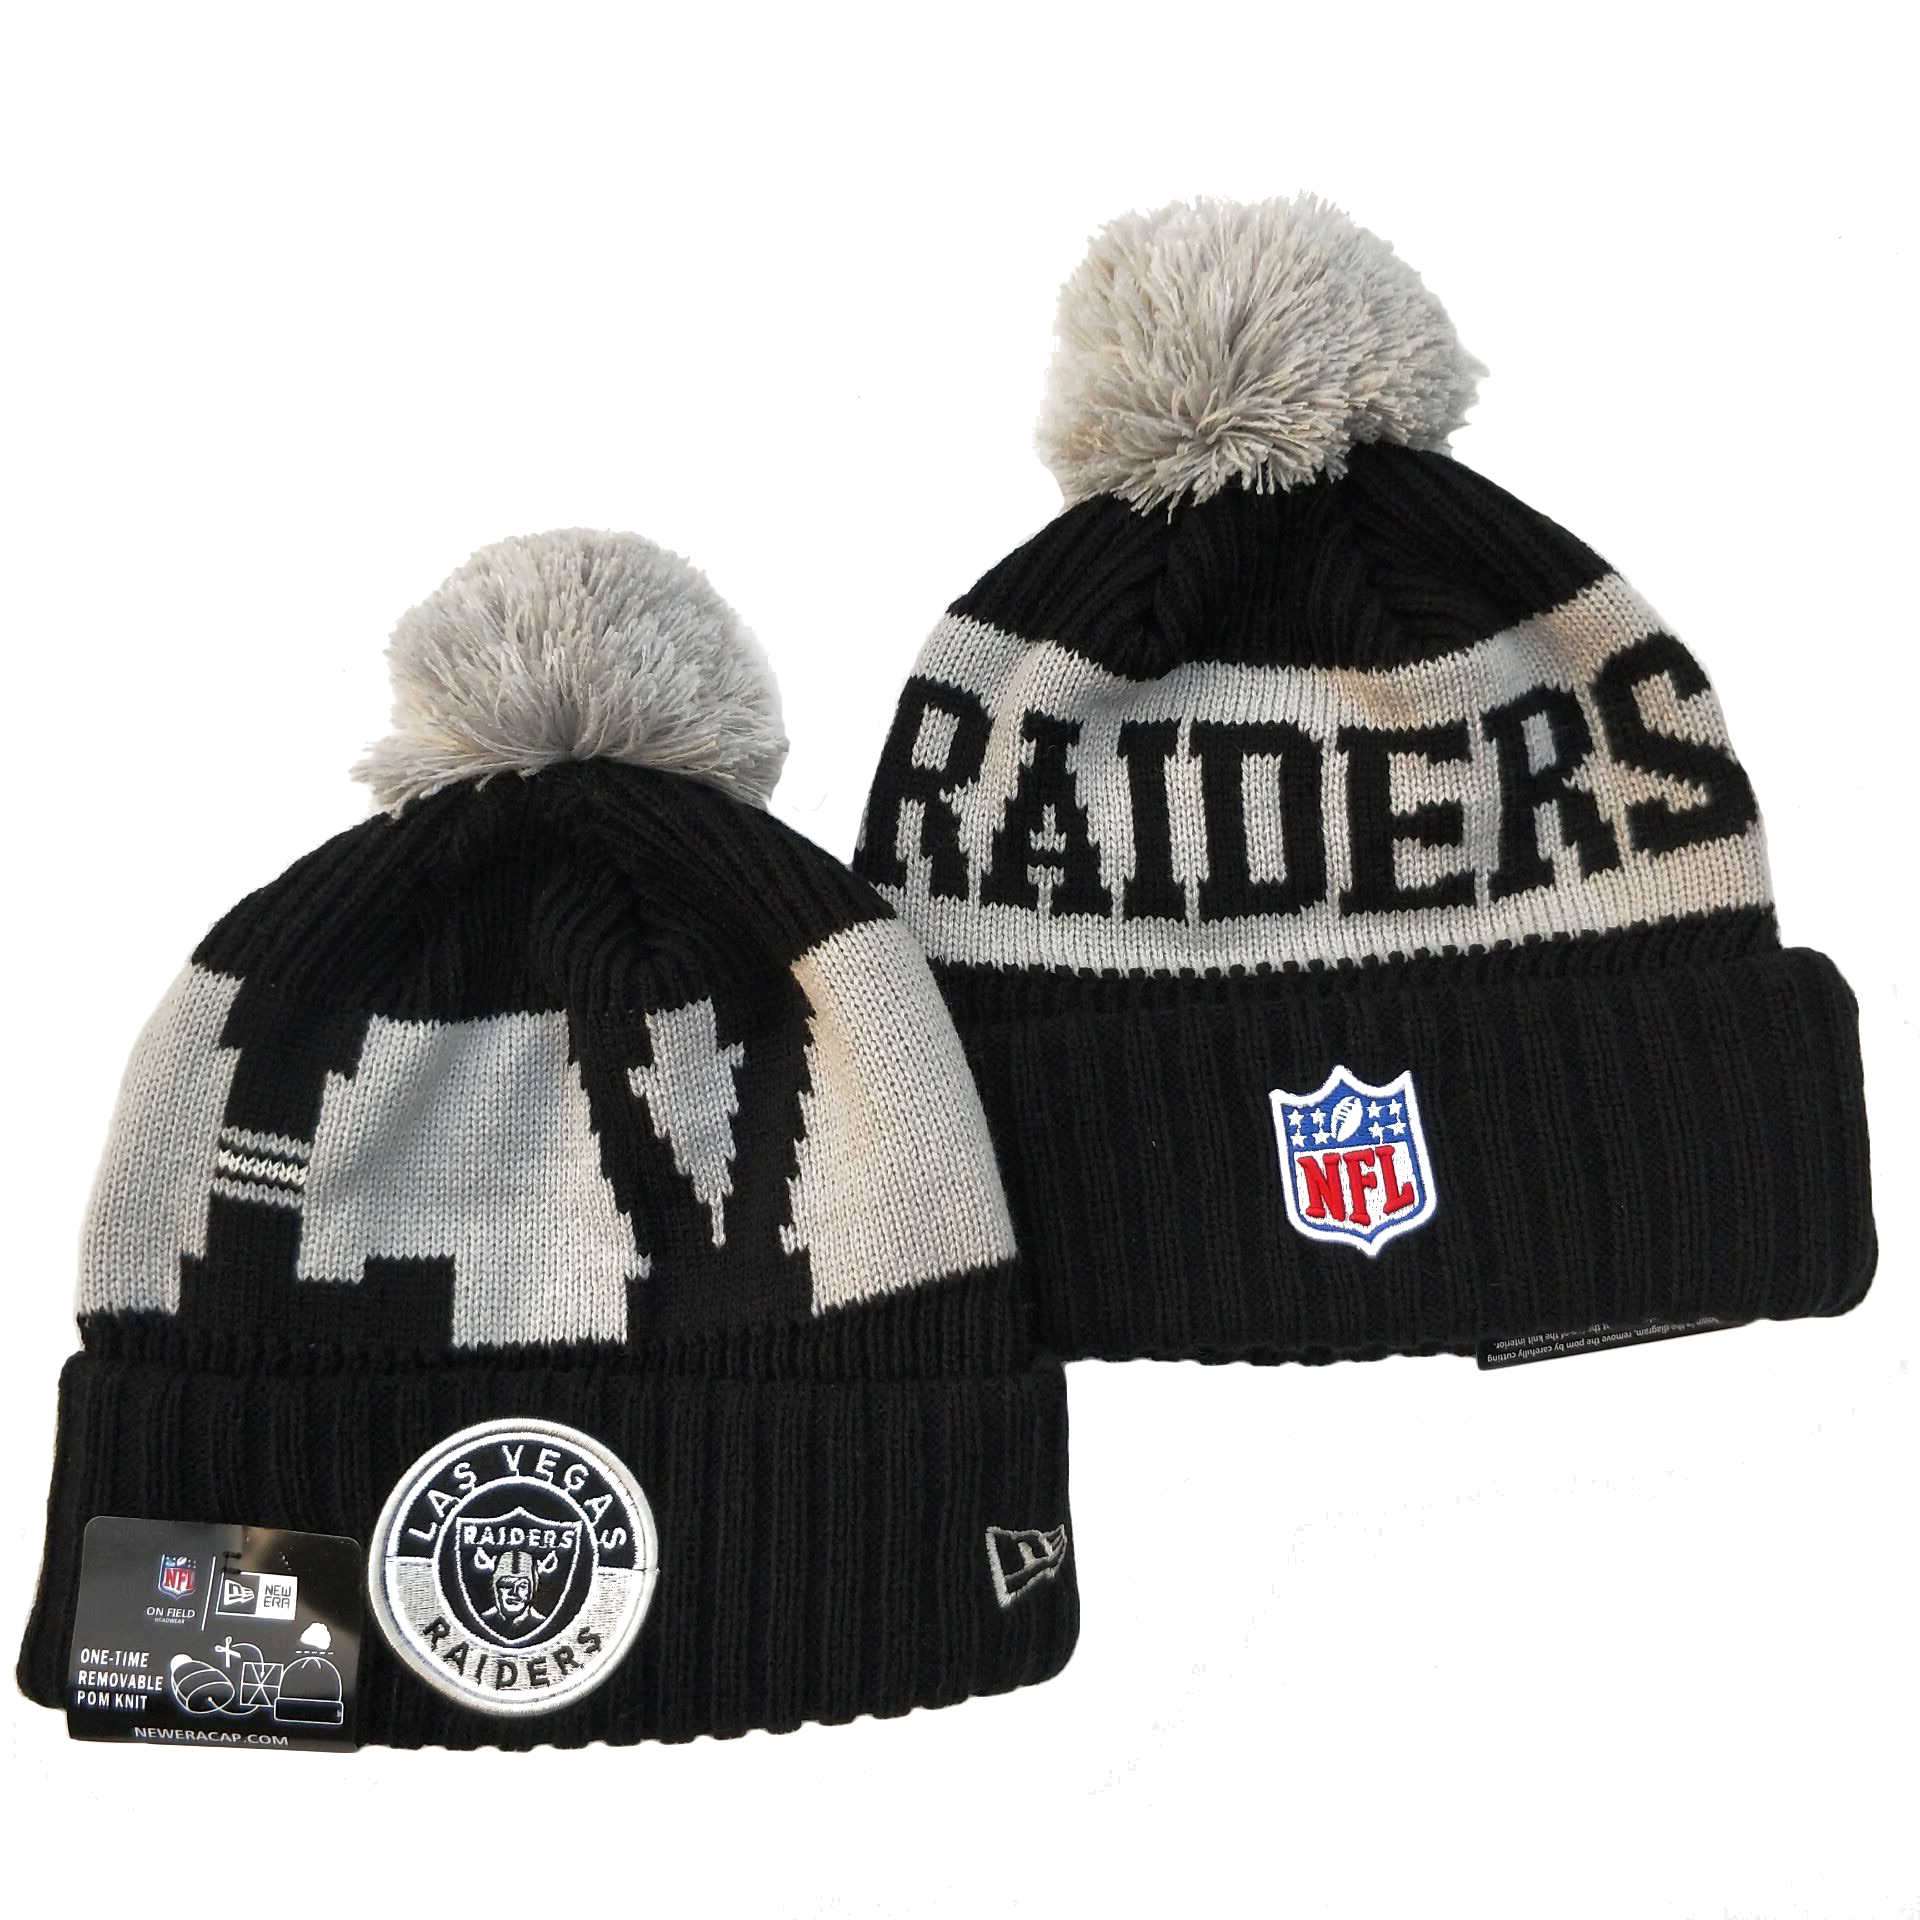 Las Vegas Raiders Knit Hats 073